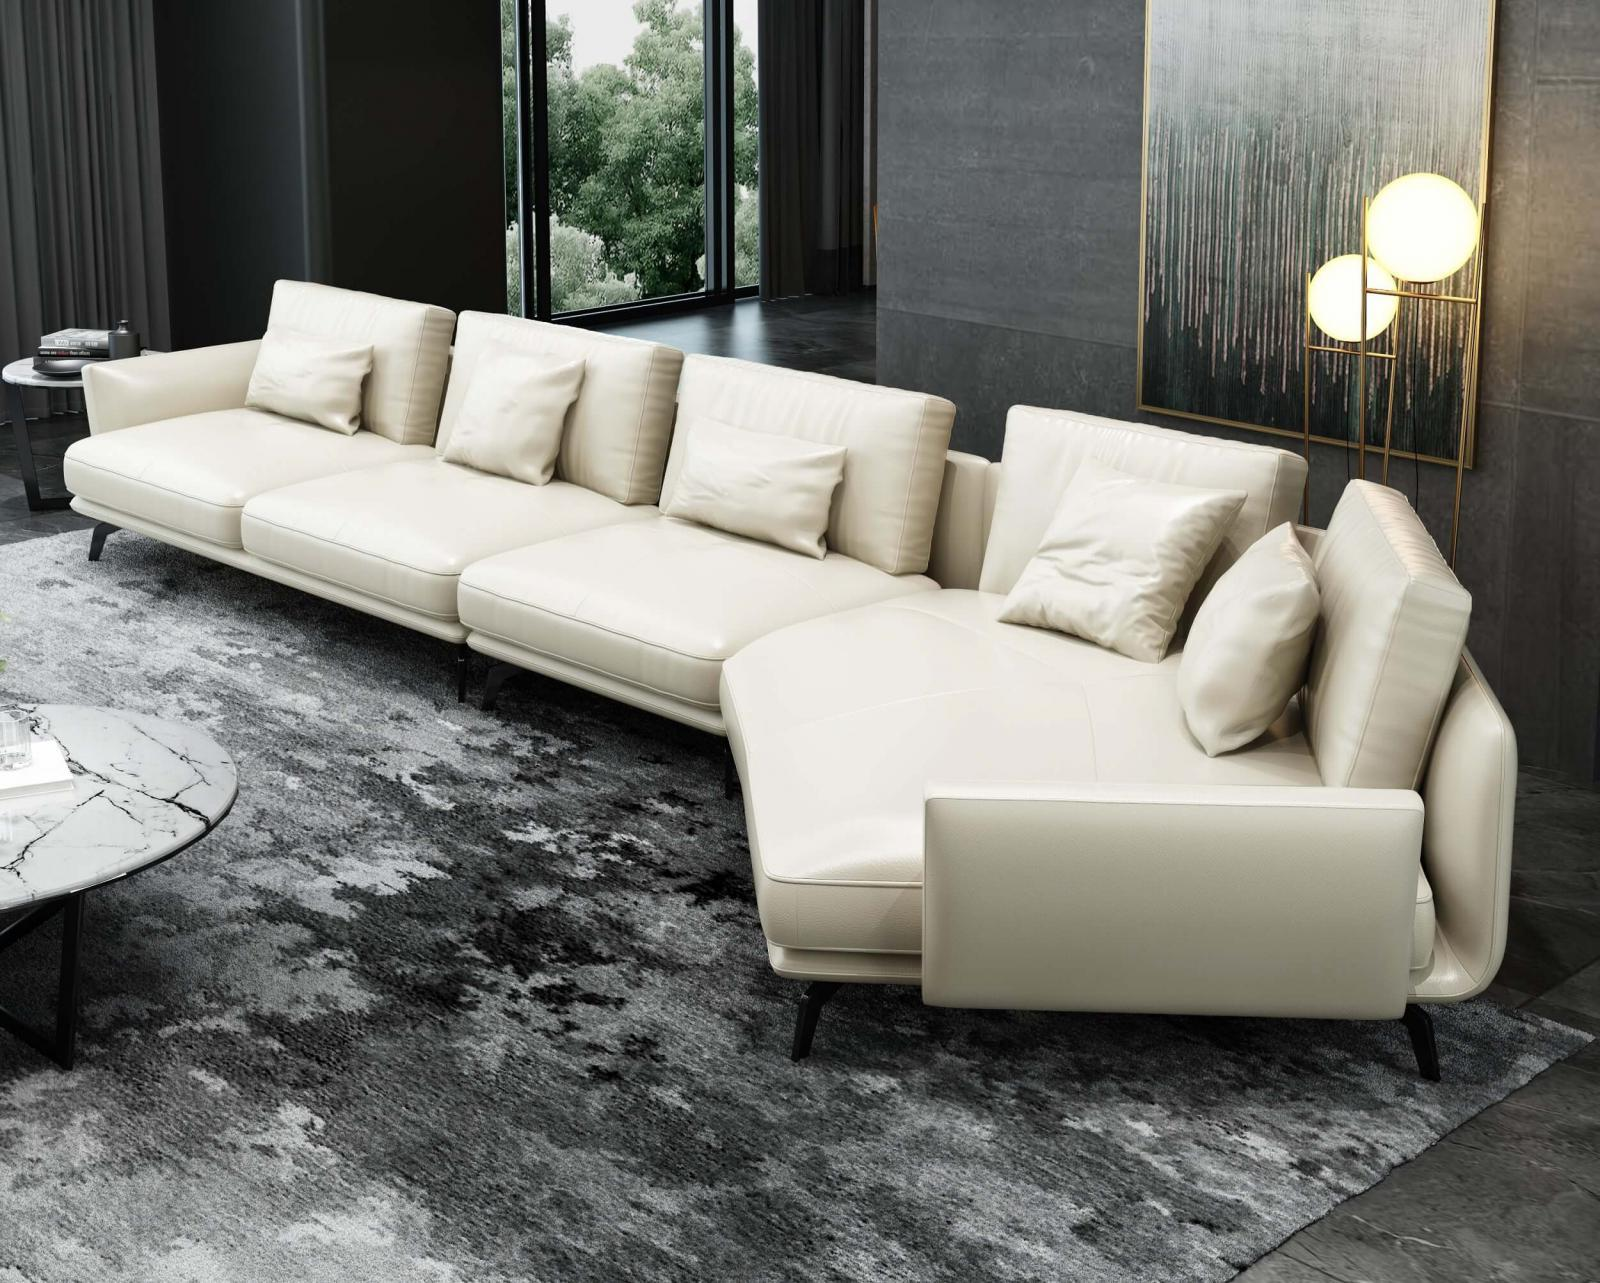 Modern  Vintage Off-White Wood  Genuine leather  Solid Hardwood and Italian Leather Sectional Sofa EUROPEAN FURNITURE EF-54437R-3RHC